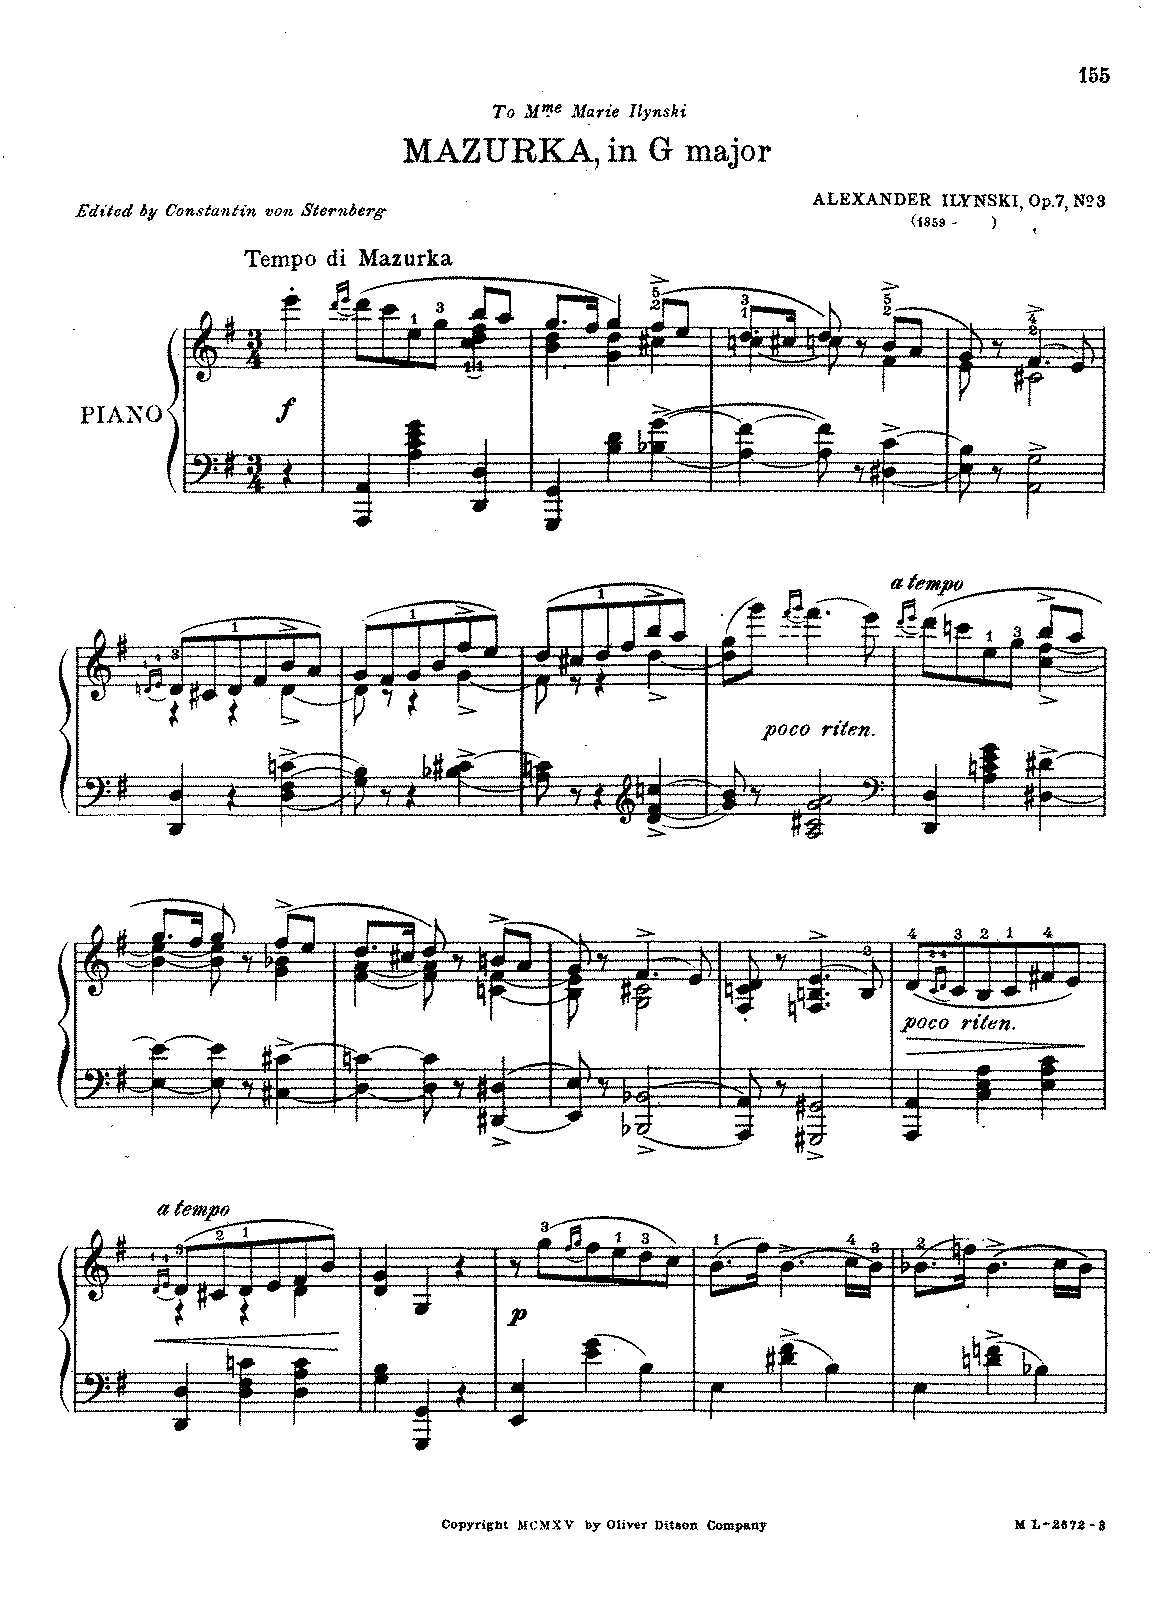 Ilyinsky - Op.7 No.3 - Mazurka in G Major.pdf